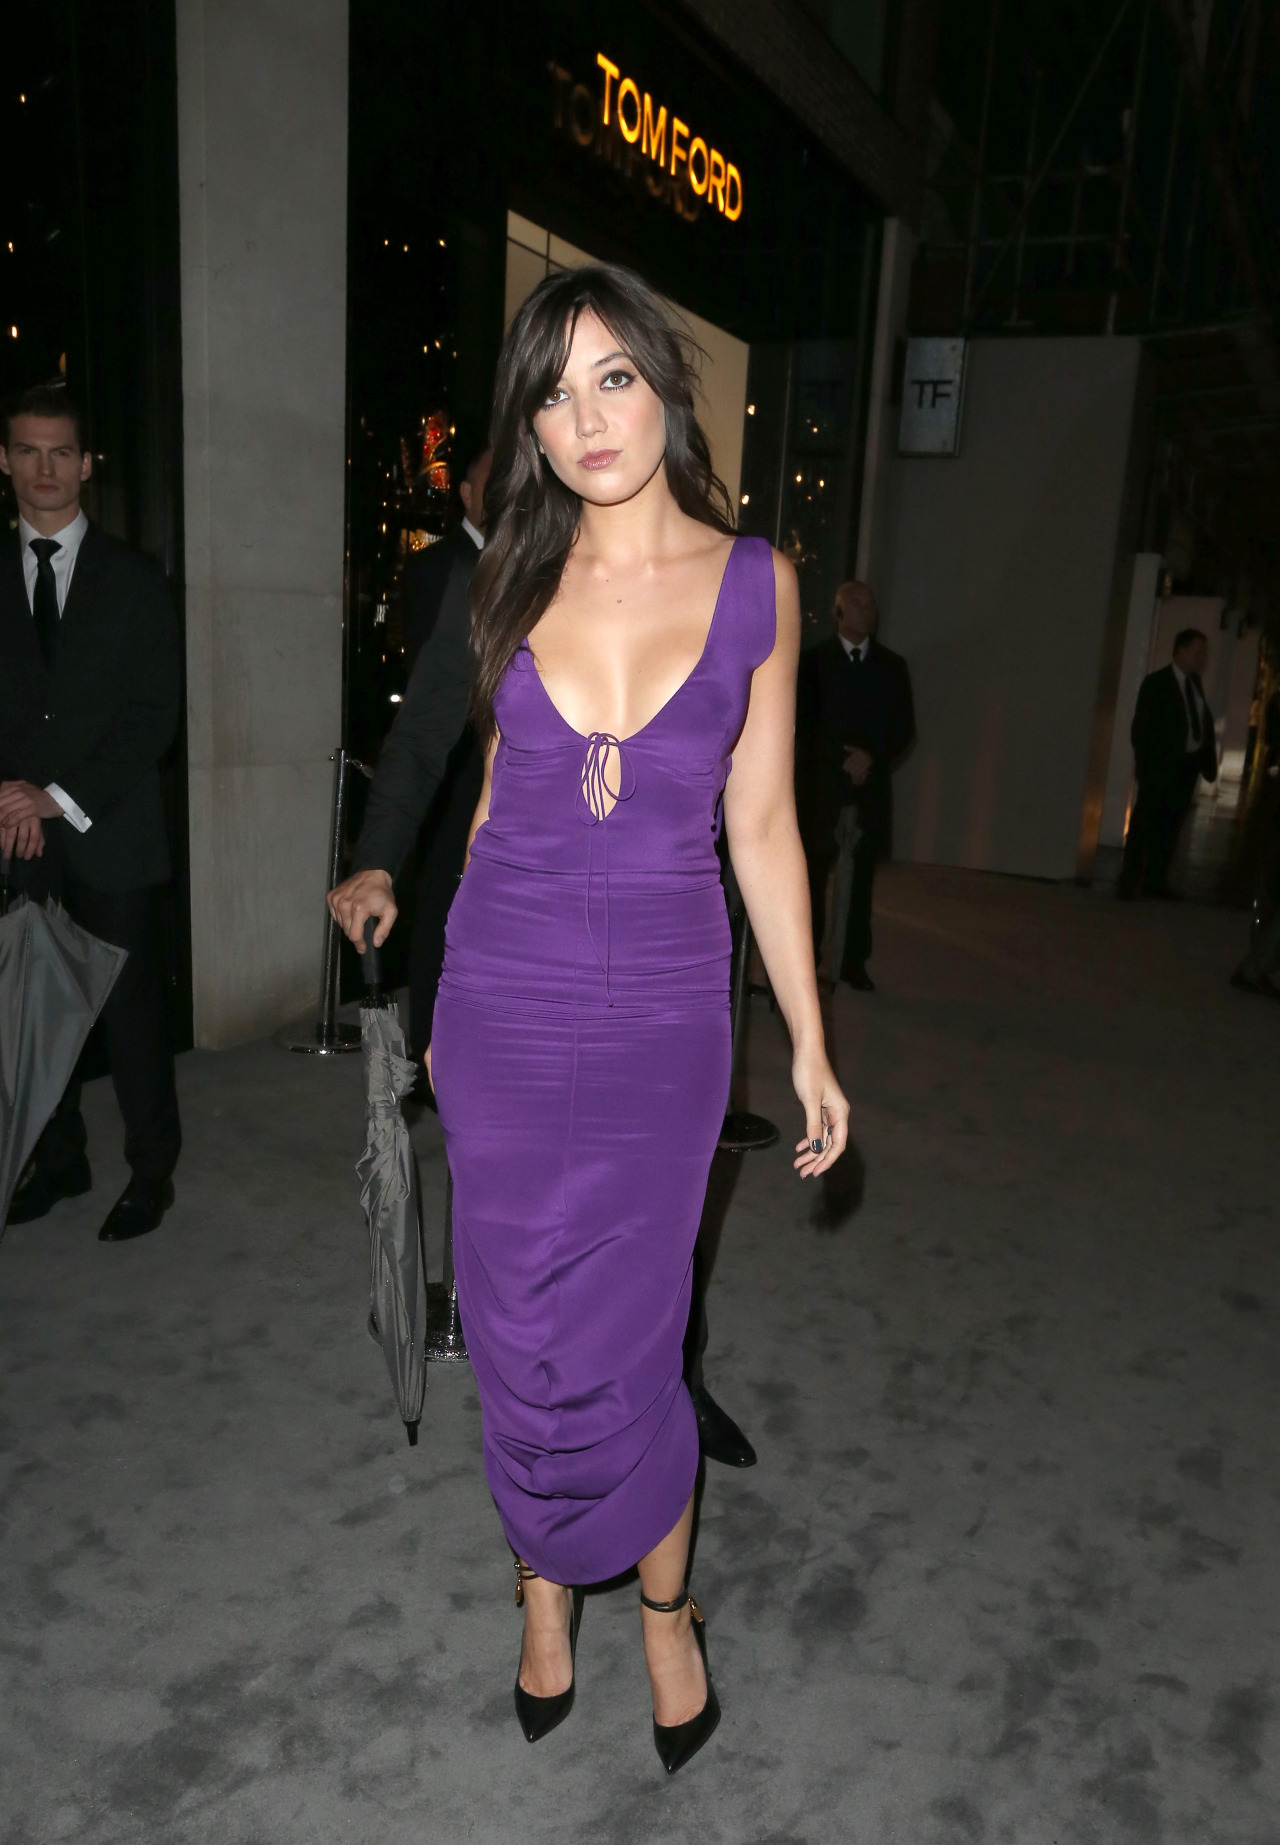 Daisy Lowe at Tom Ford store opening London Fashion Week | Pinterest Picks - Happy Birthday Daisy Lowe